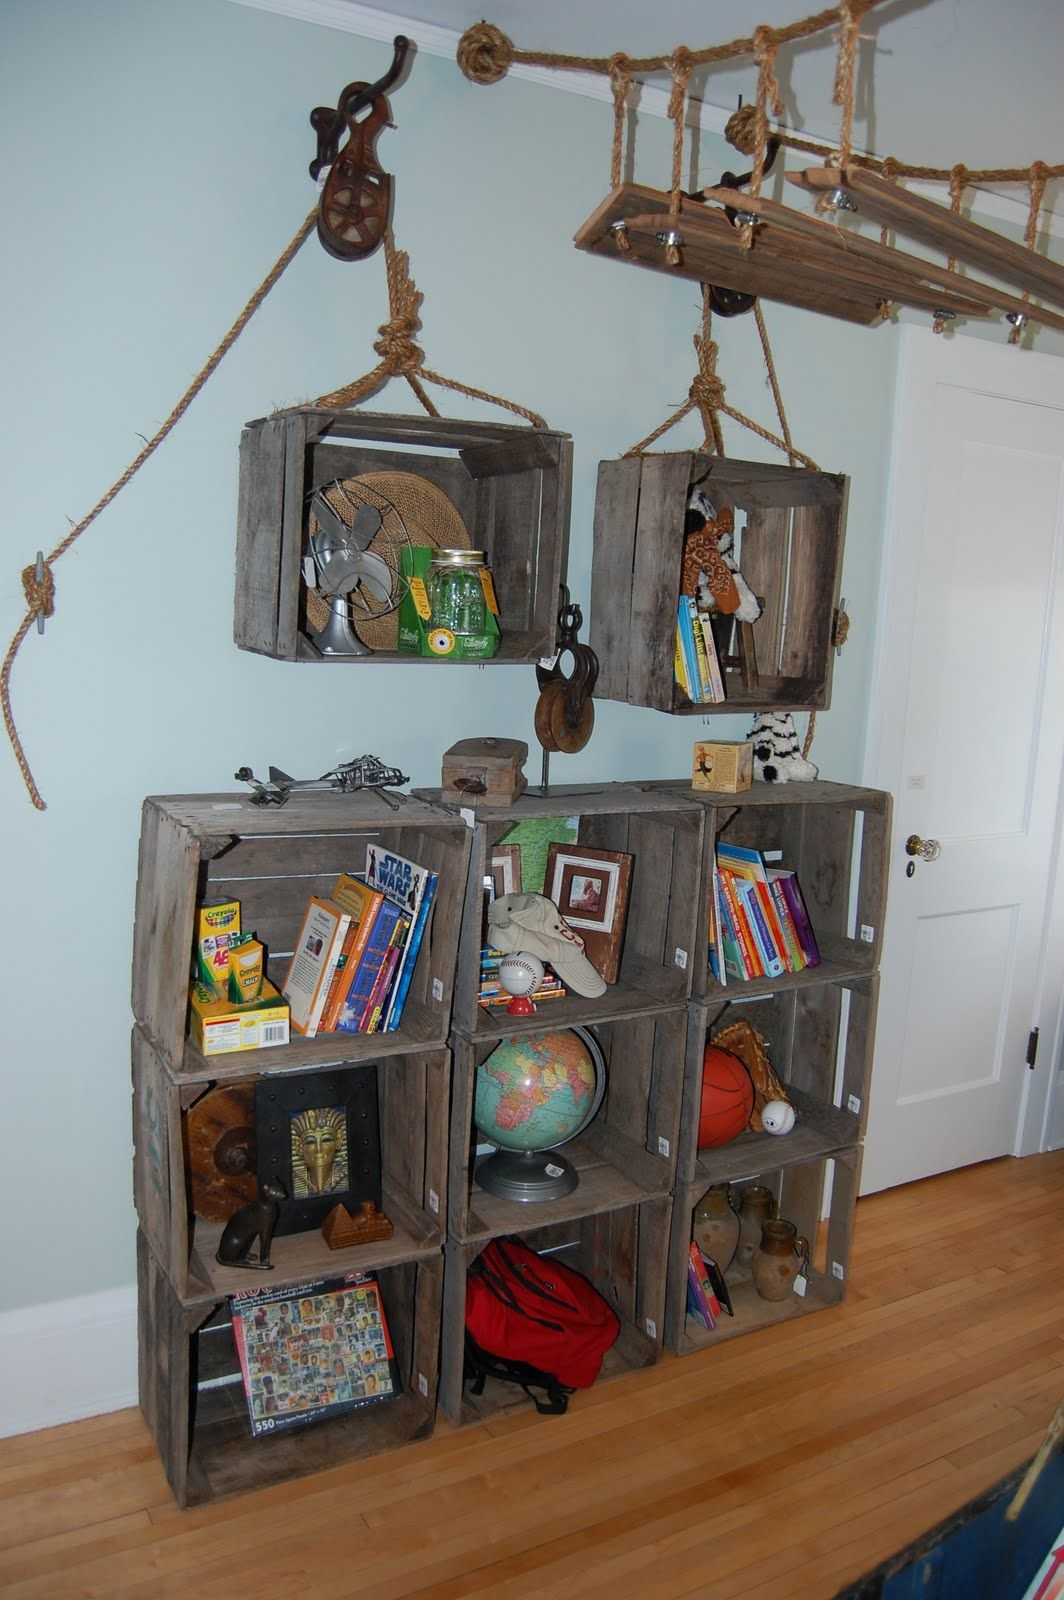 Stamp till  cramp bachman  spring ideas house also fun ides for  kids room  need this his pirate rh pinterest